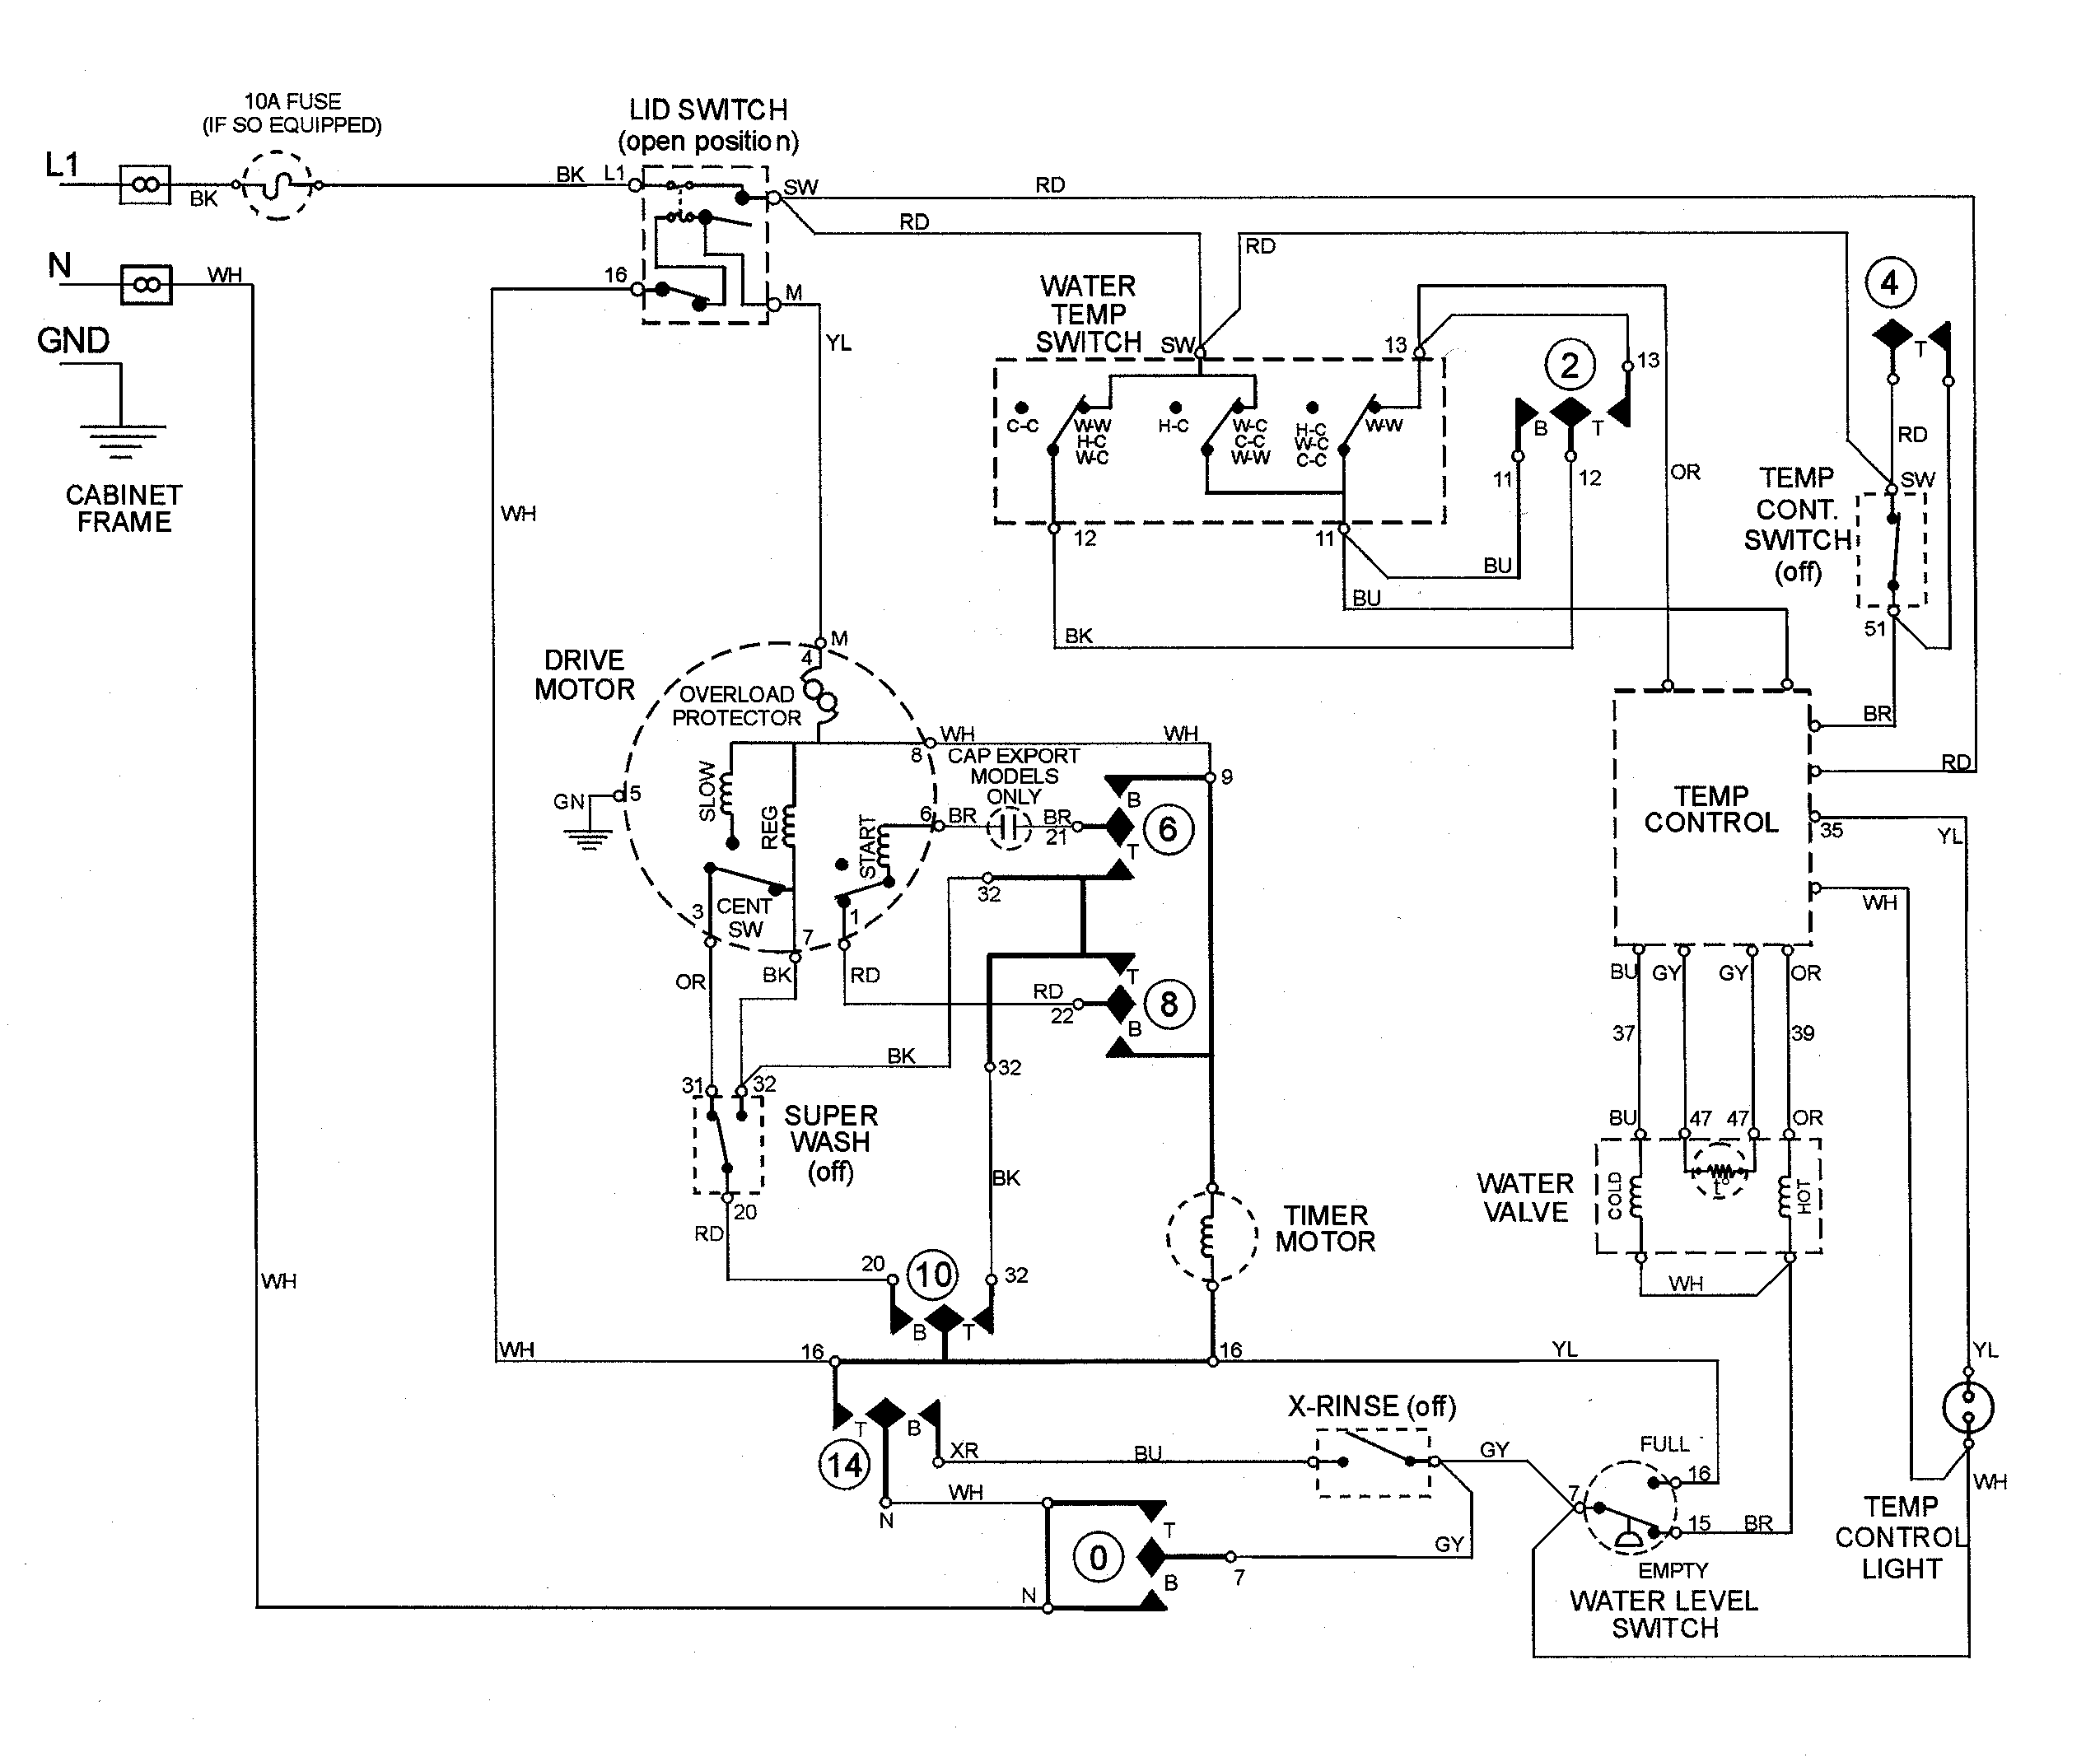 small resolution of ge ev1 wire diagram wiring diagram advance ge ev 1 wire diagram